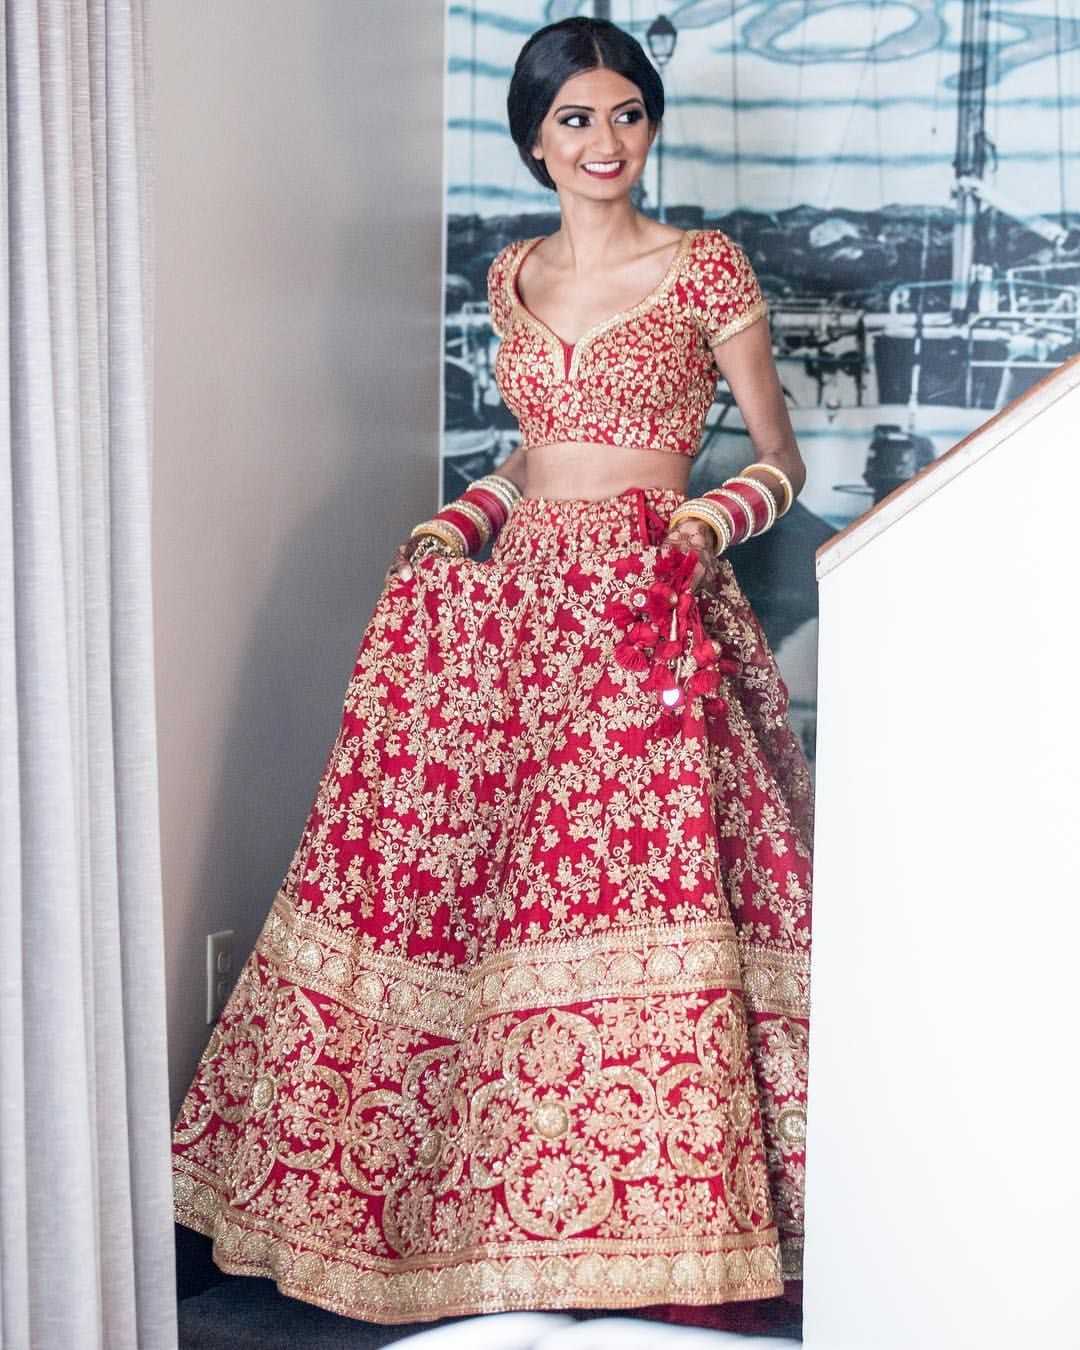 Custom Made Lehengas Inquiries Nivetasfashion Gmail Com Whatsapp 917696747289 Direct From Indian Wedding Outfits Bridal Anarkali Suits Indian Wedding Gowns